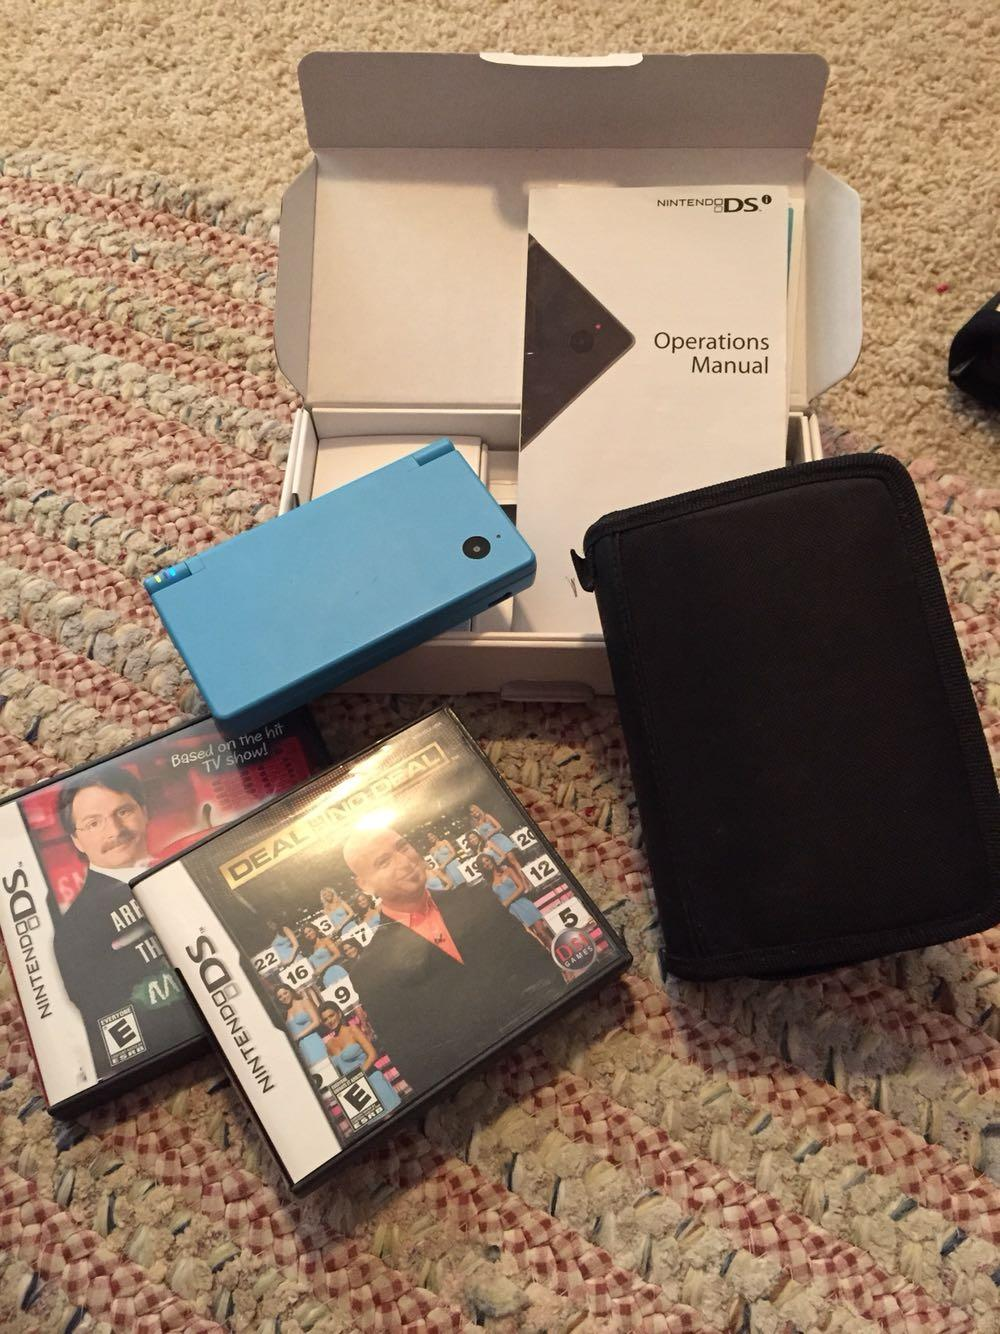 Nintendo DSi, case, stylus, 2 games (like Are You Smarter Than A 5th  Grader? and Deal or No Deal) - all for $40